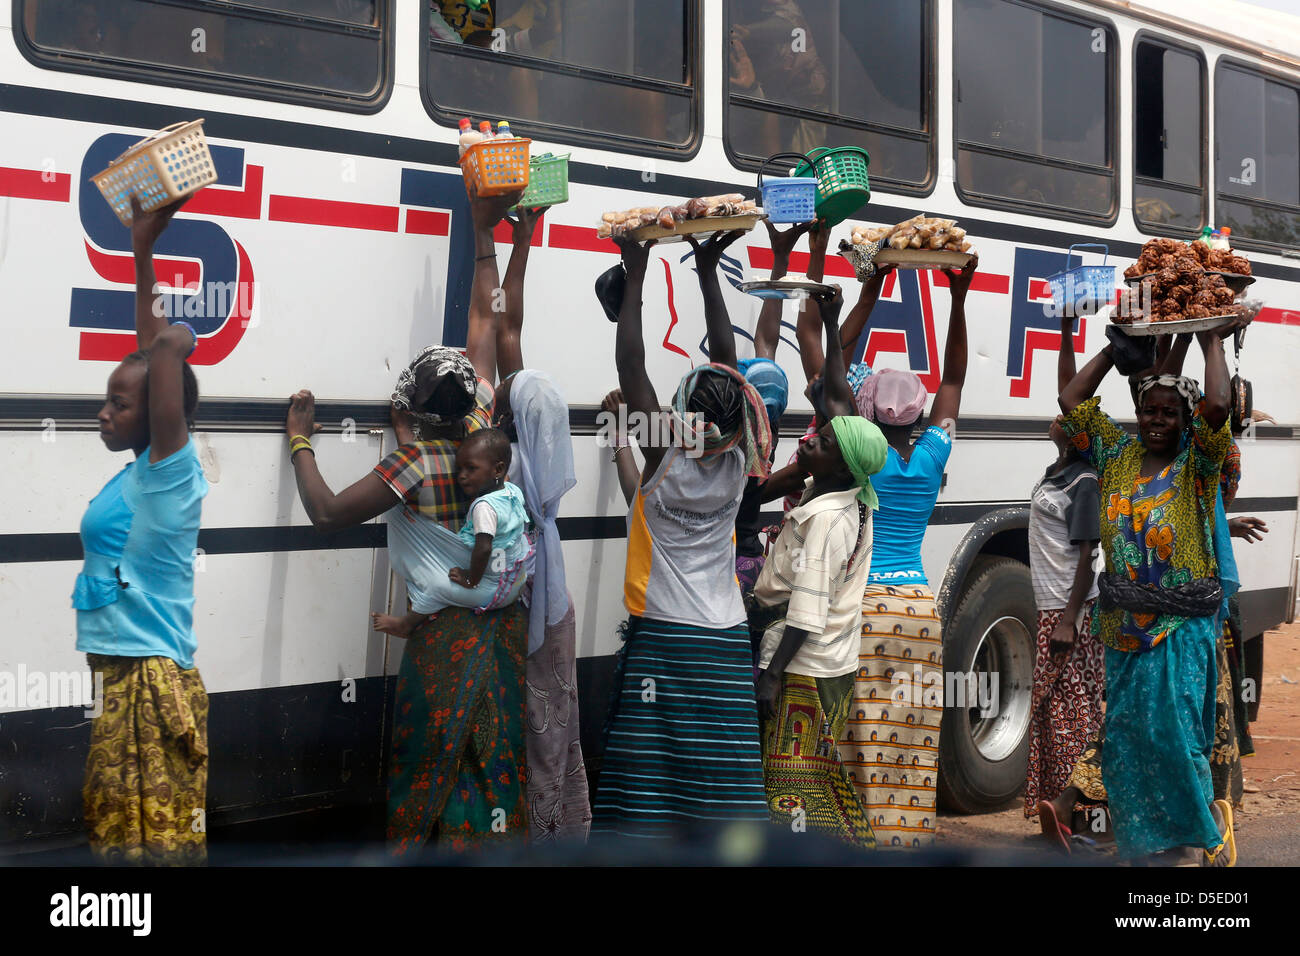 Street sellers try to selling refreshments and fruits to bus passengers, Burkina Faso, Africa - Stock Image